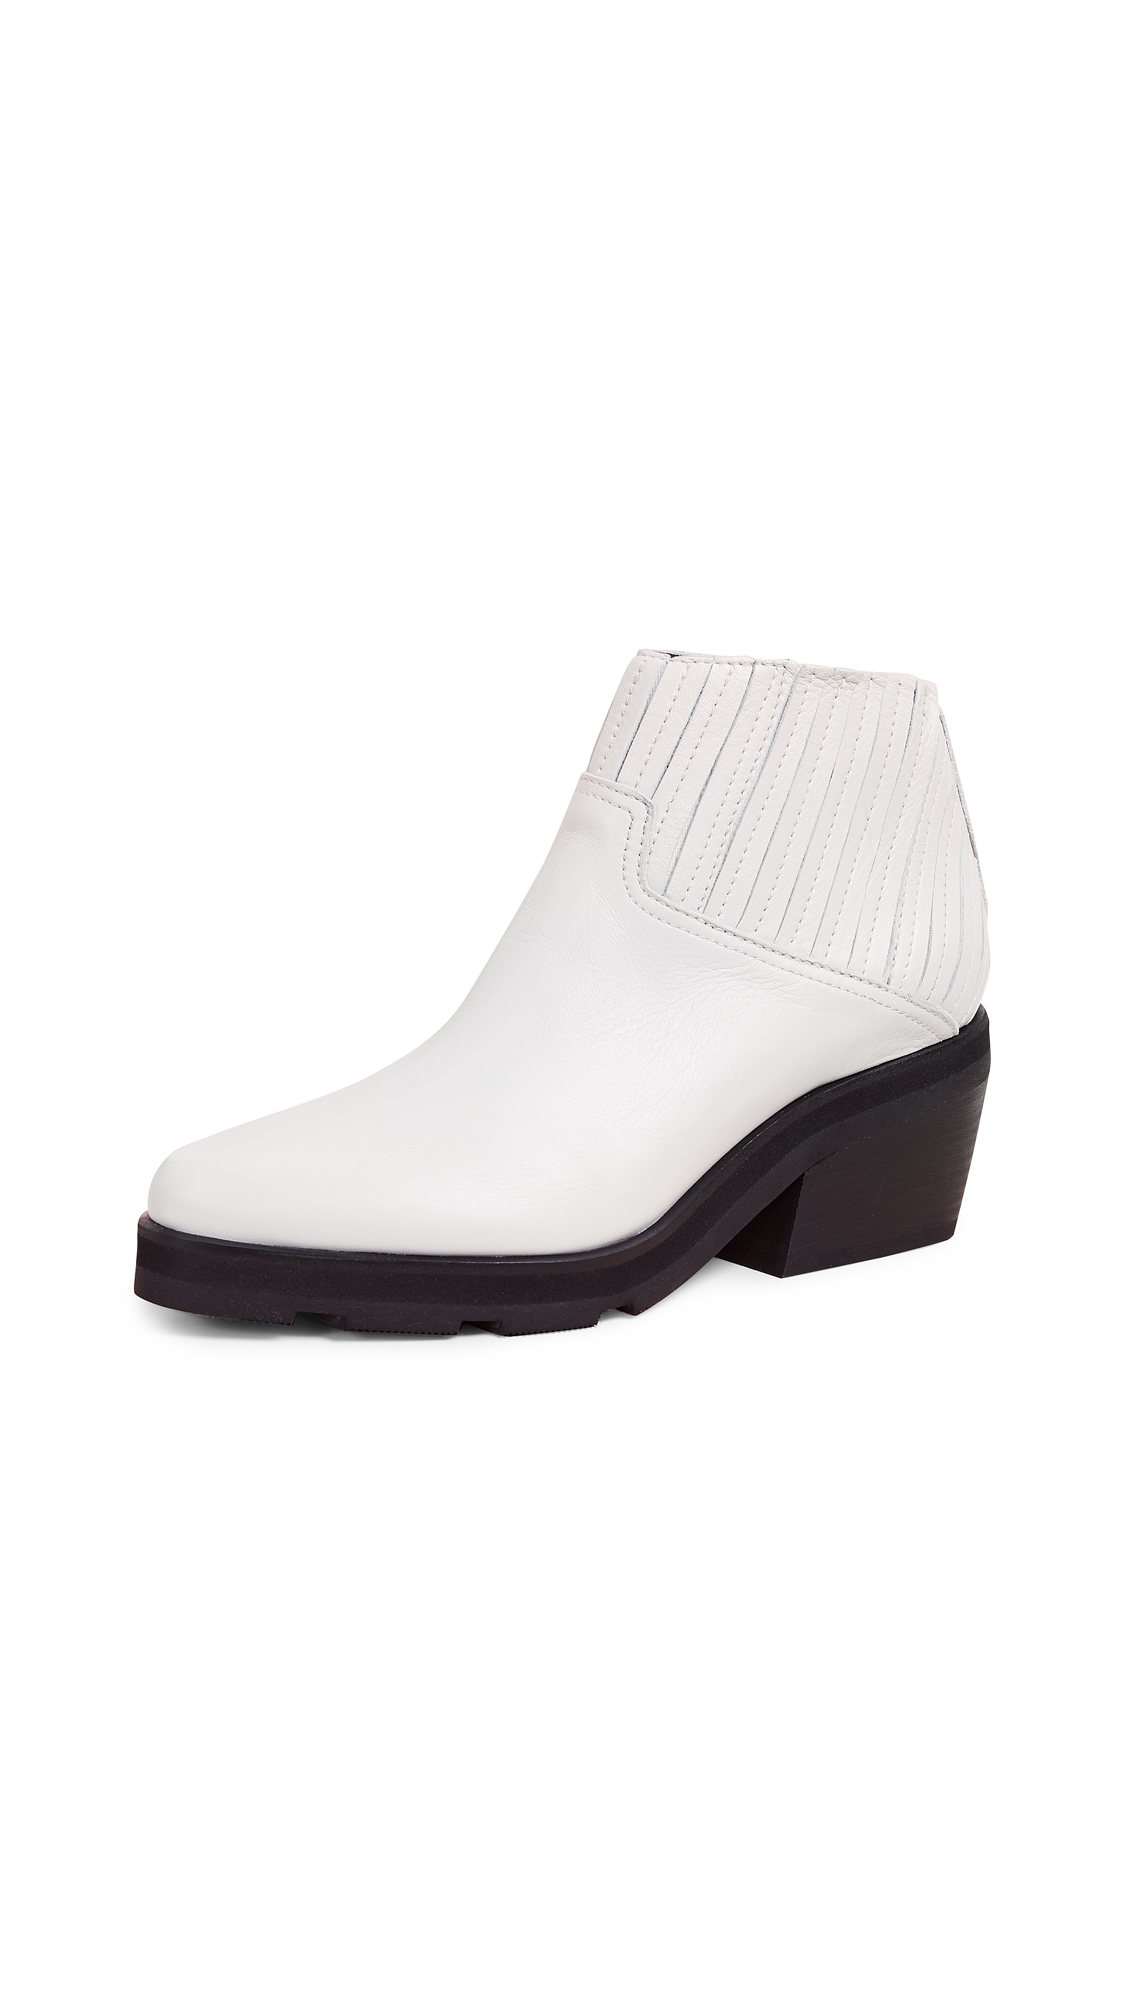 LD Tuttle The Concord Ankle Boots - Plaster